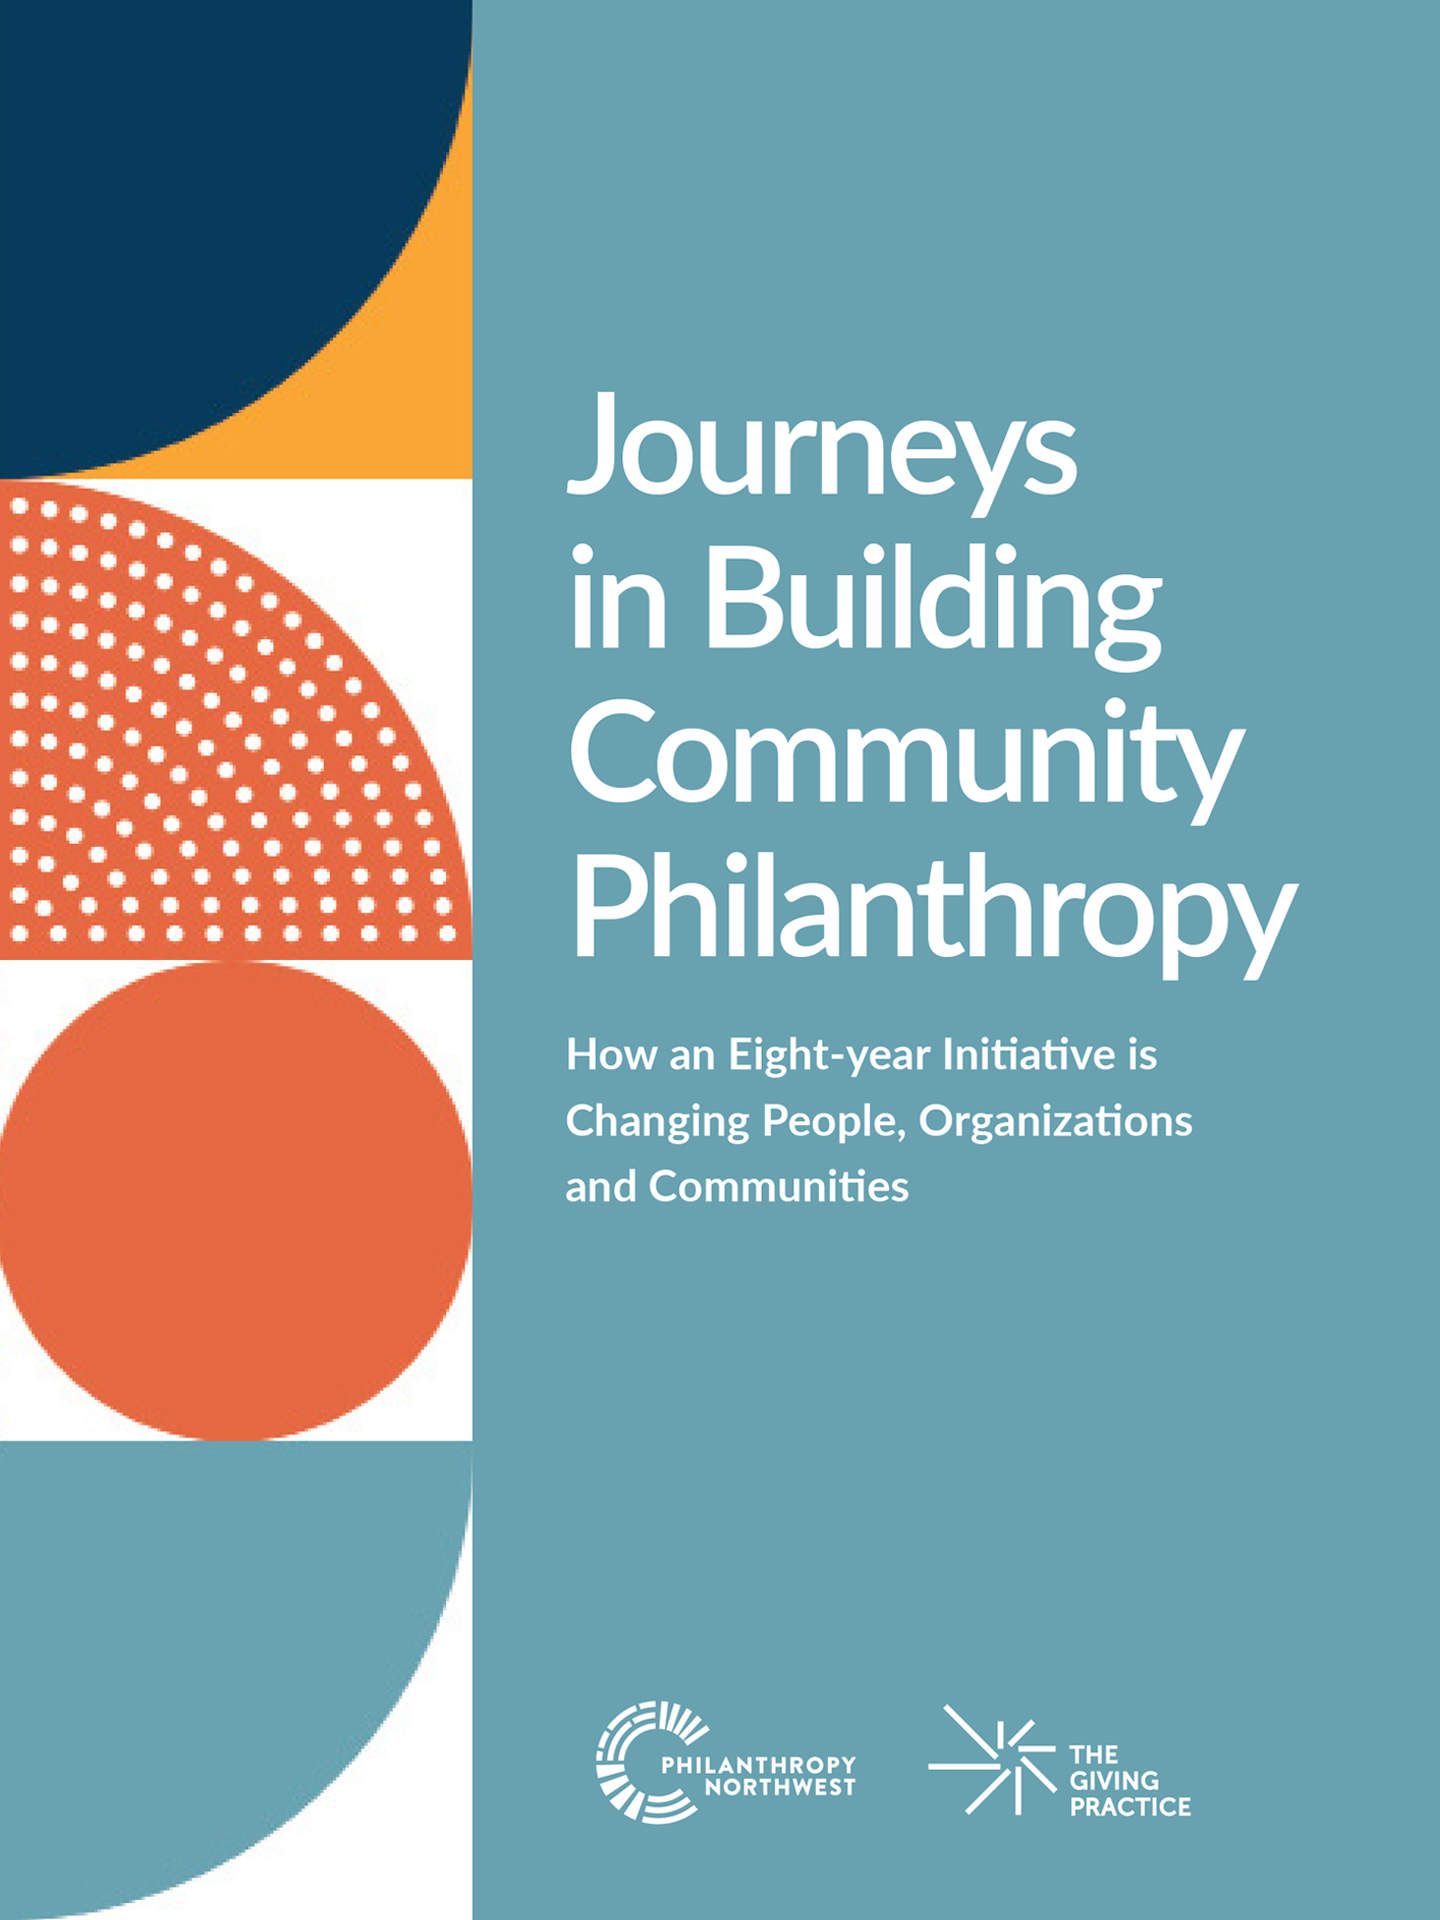 Cover image for report titled, Journeys in Building Community Philanthropy. Cover design has a blue-green background with multi-colored shapes in a vertical block pattern on the left side.